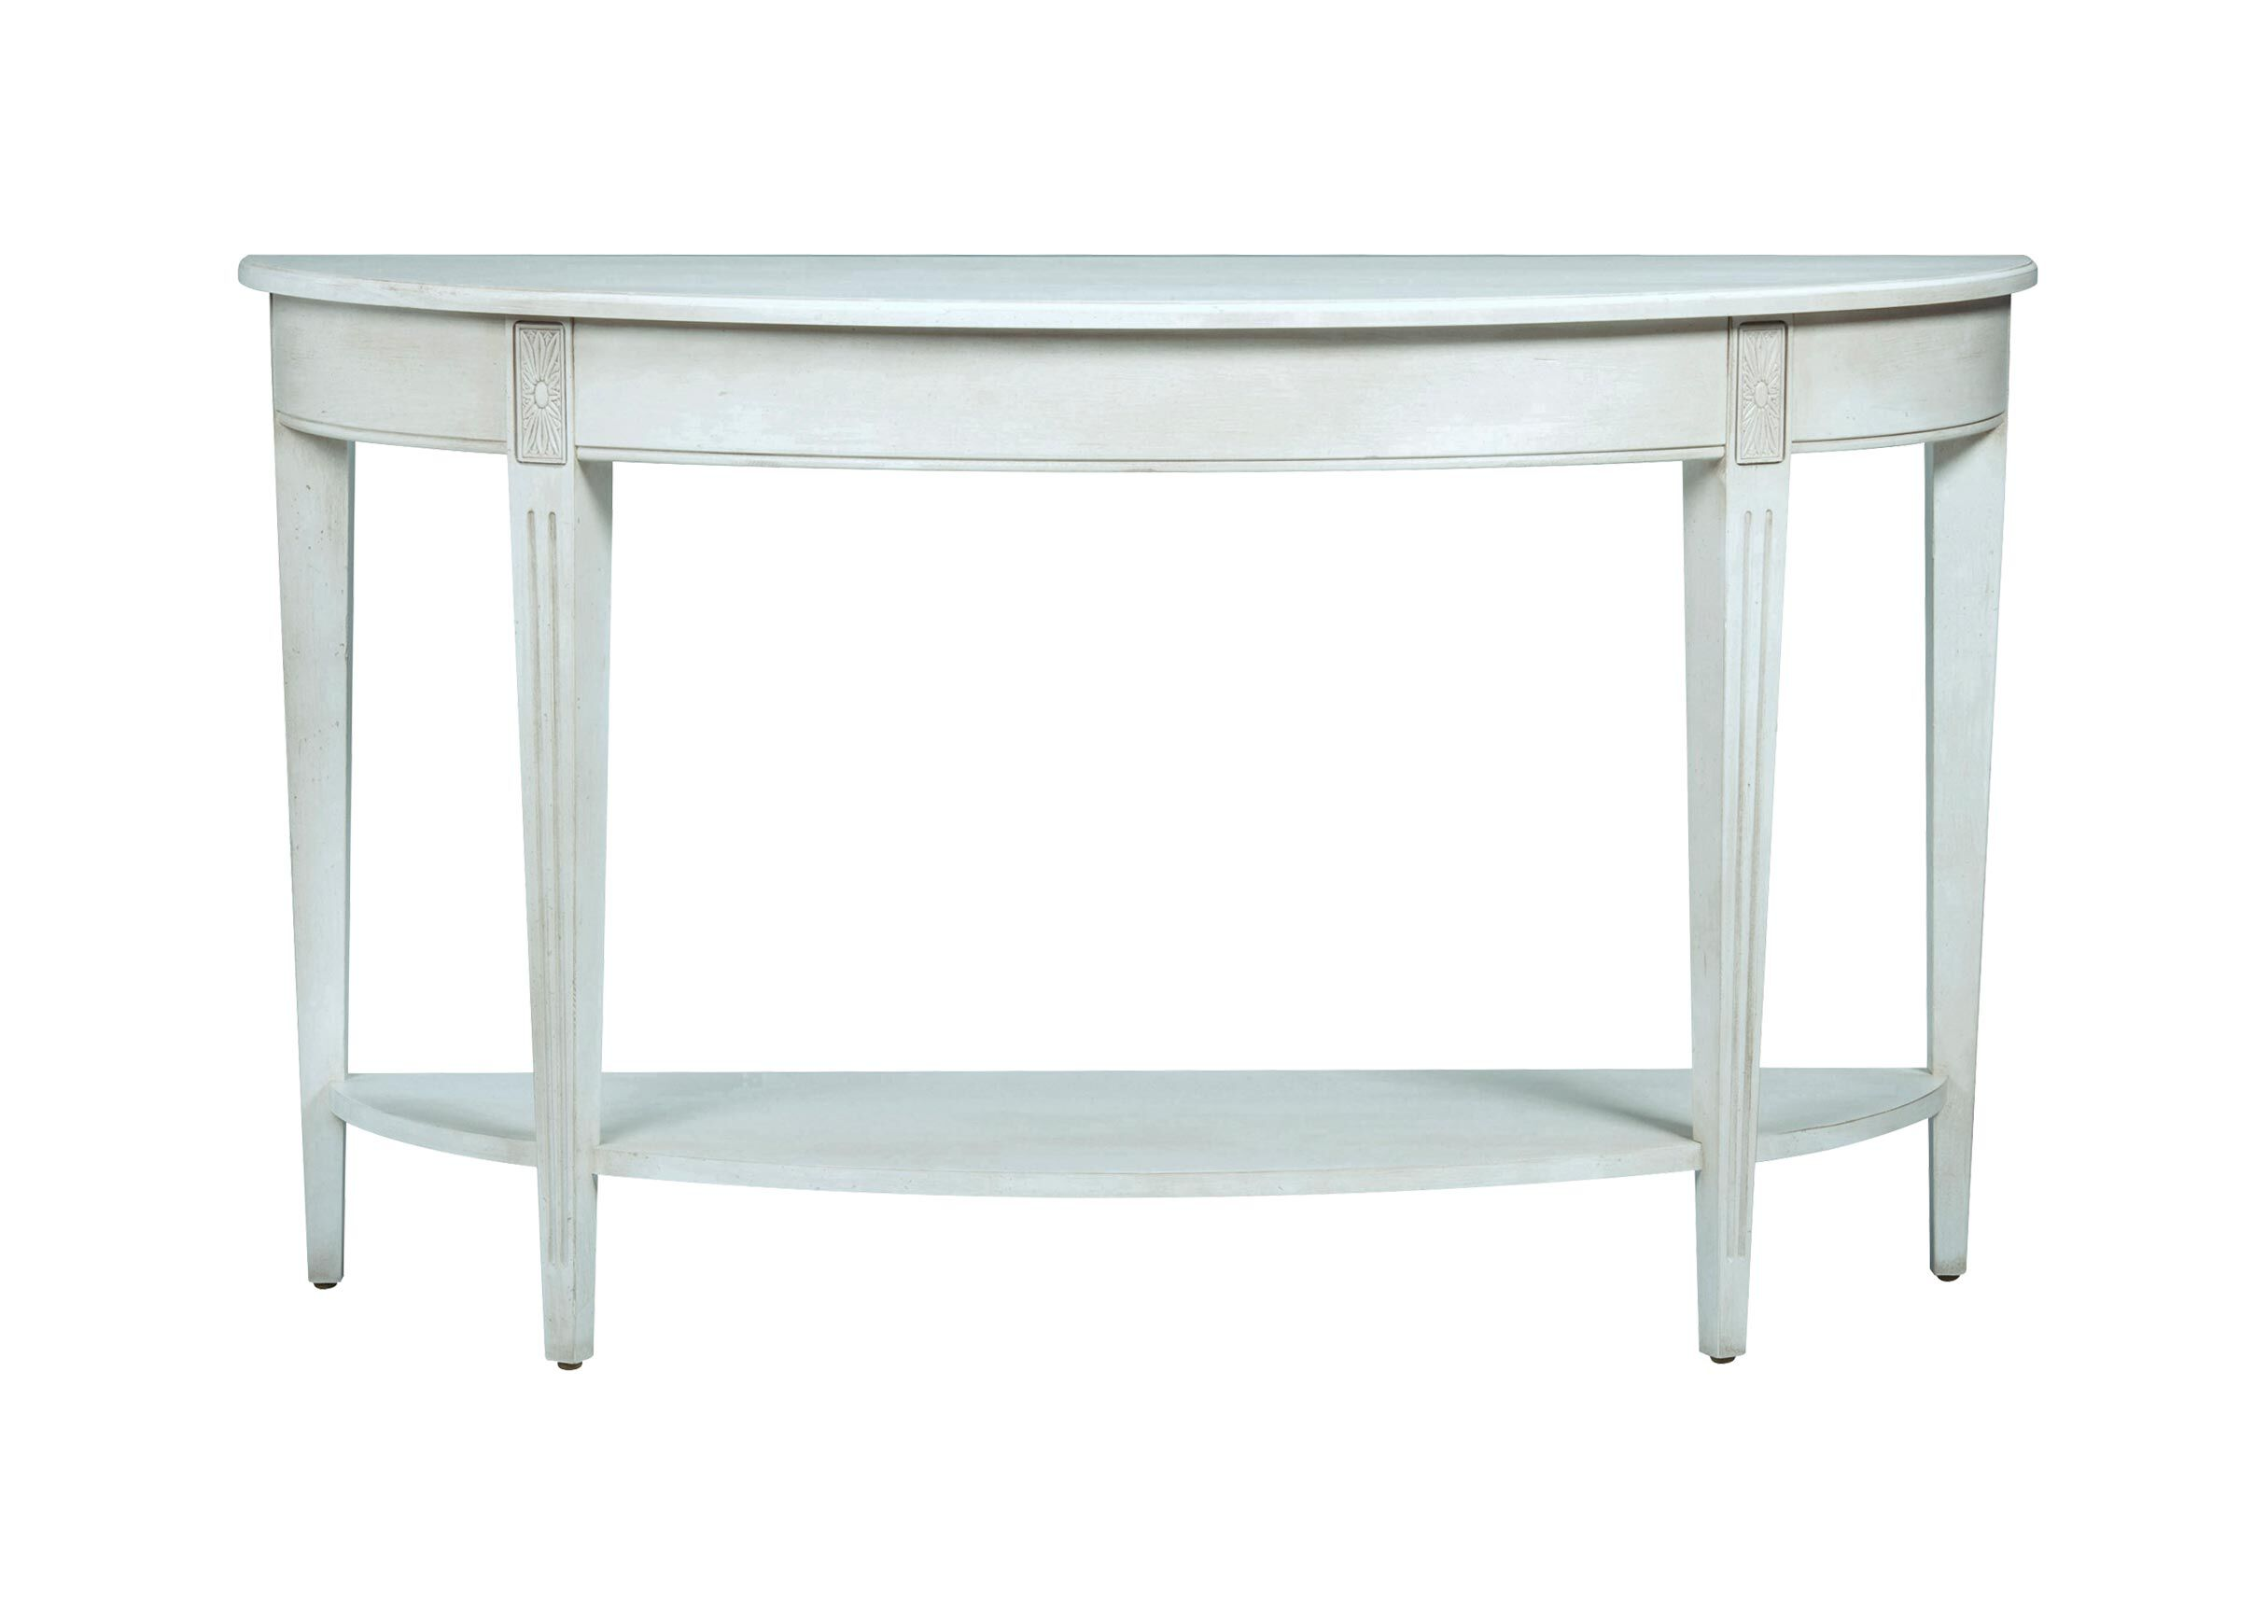 renate gray sofa table best beds for rvs barrow console tables ethan allen